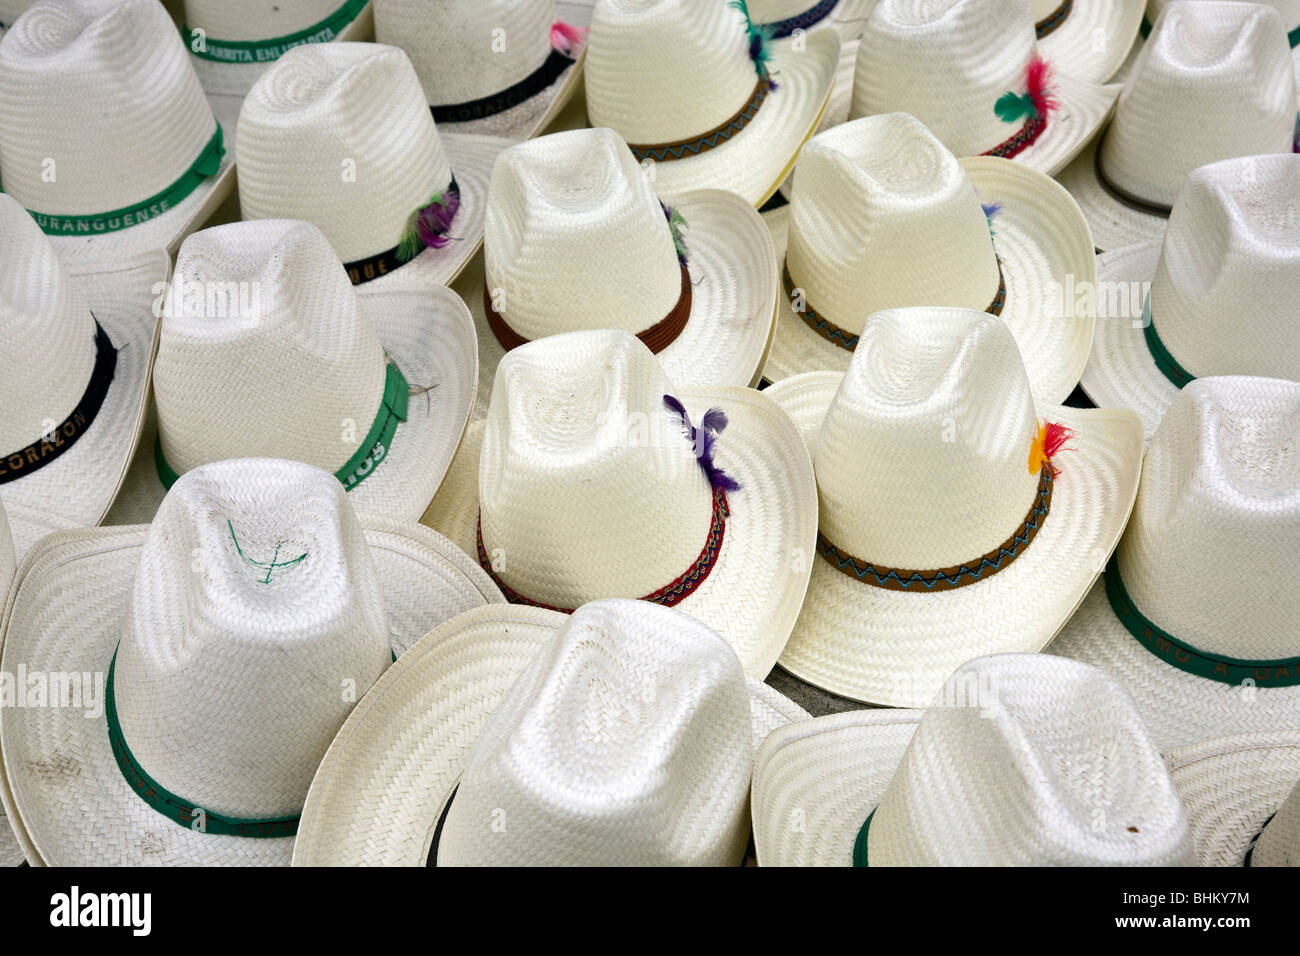 e9d2057828449 white straw sombreros with pretty feathers in their colored bands spread  out for sale at Ocotlan